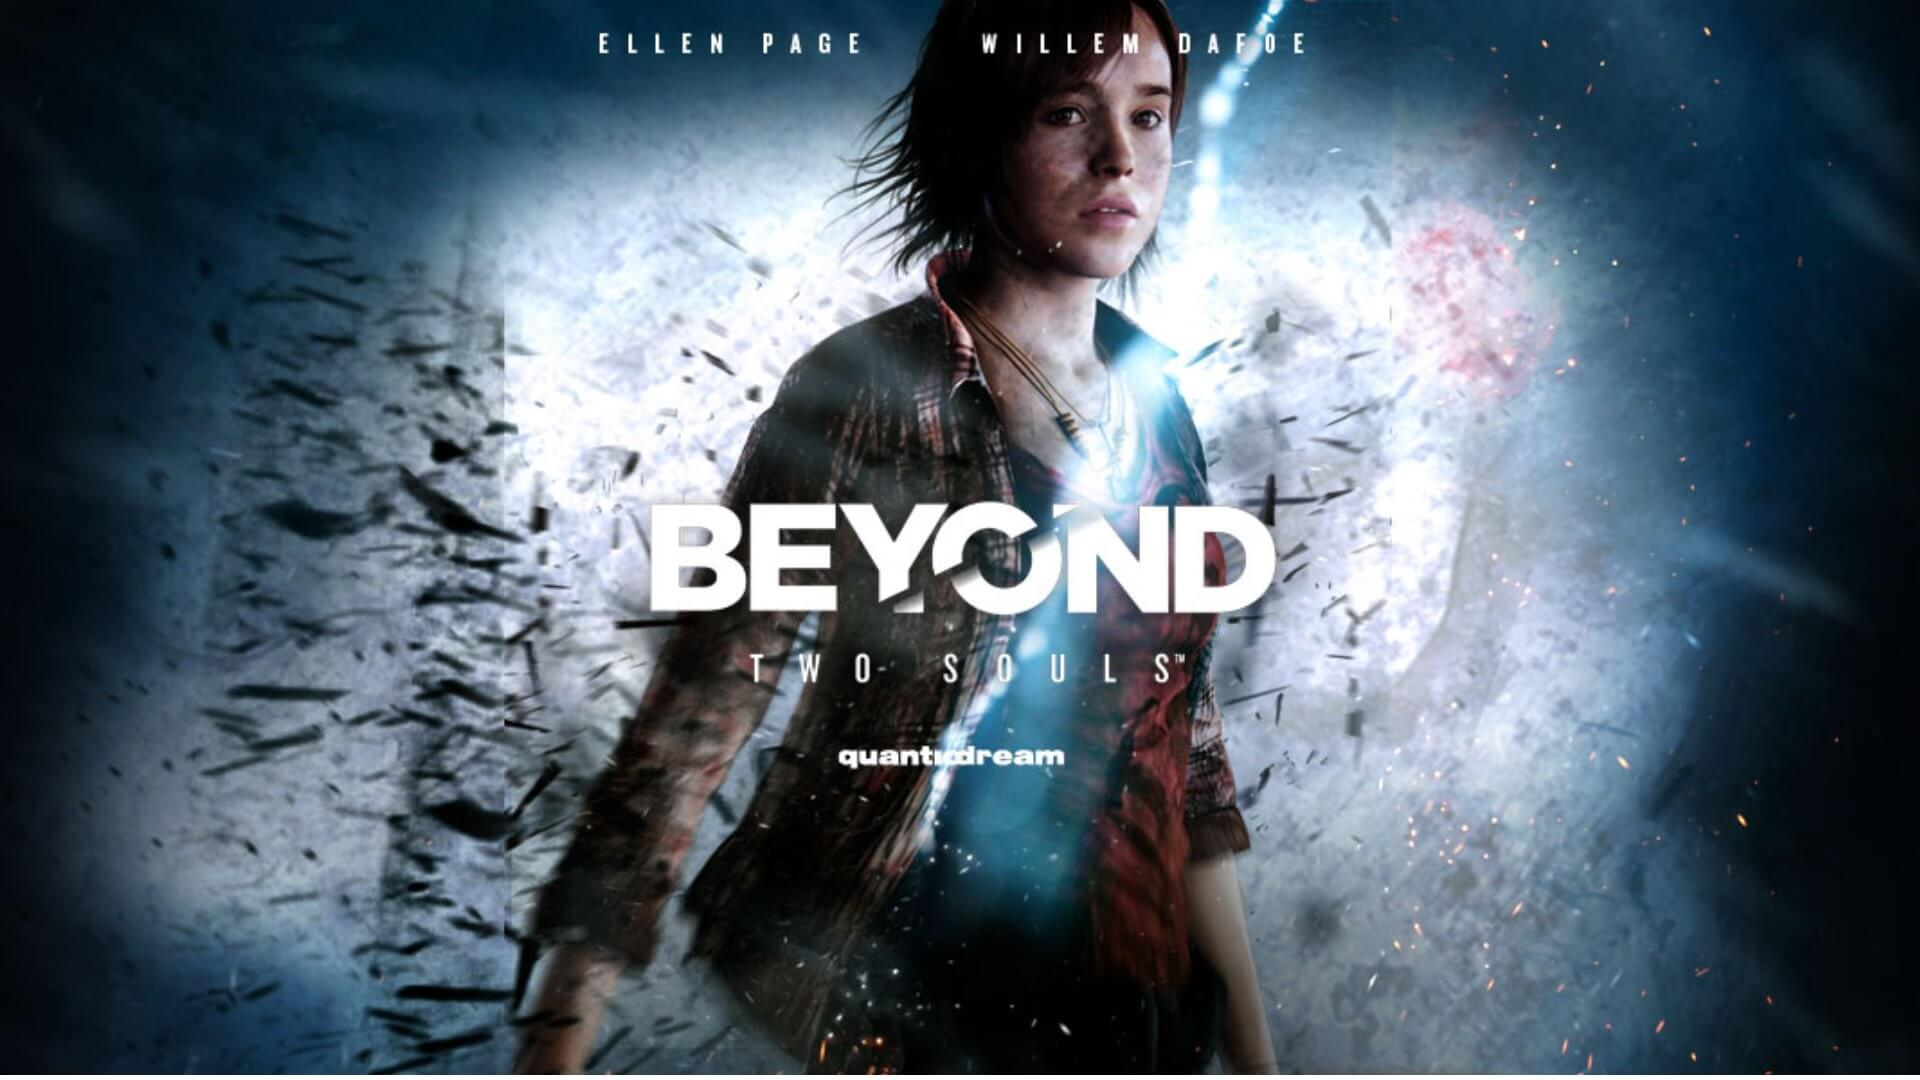 Beyond Two Souls 1 - Beyond: Two Souls - PS4 Remaster (Video Game)